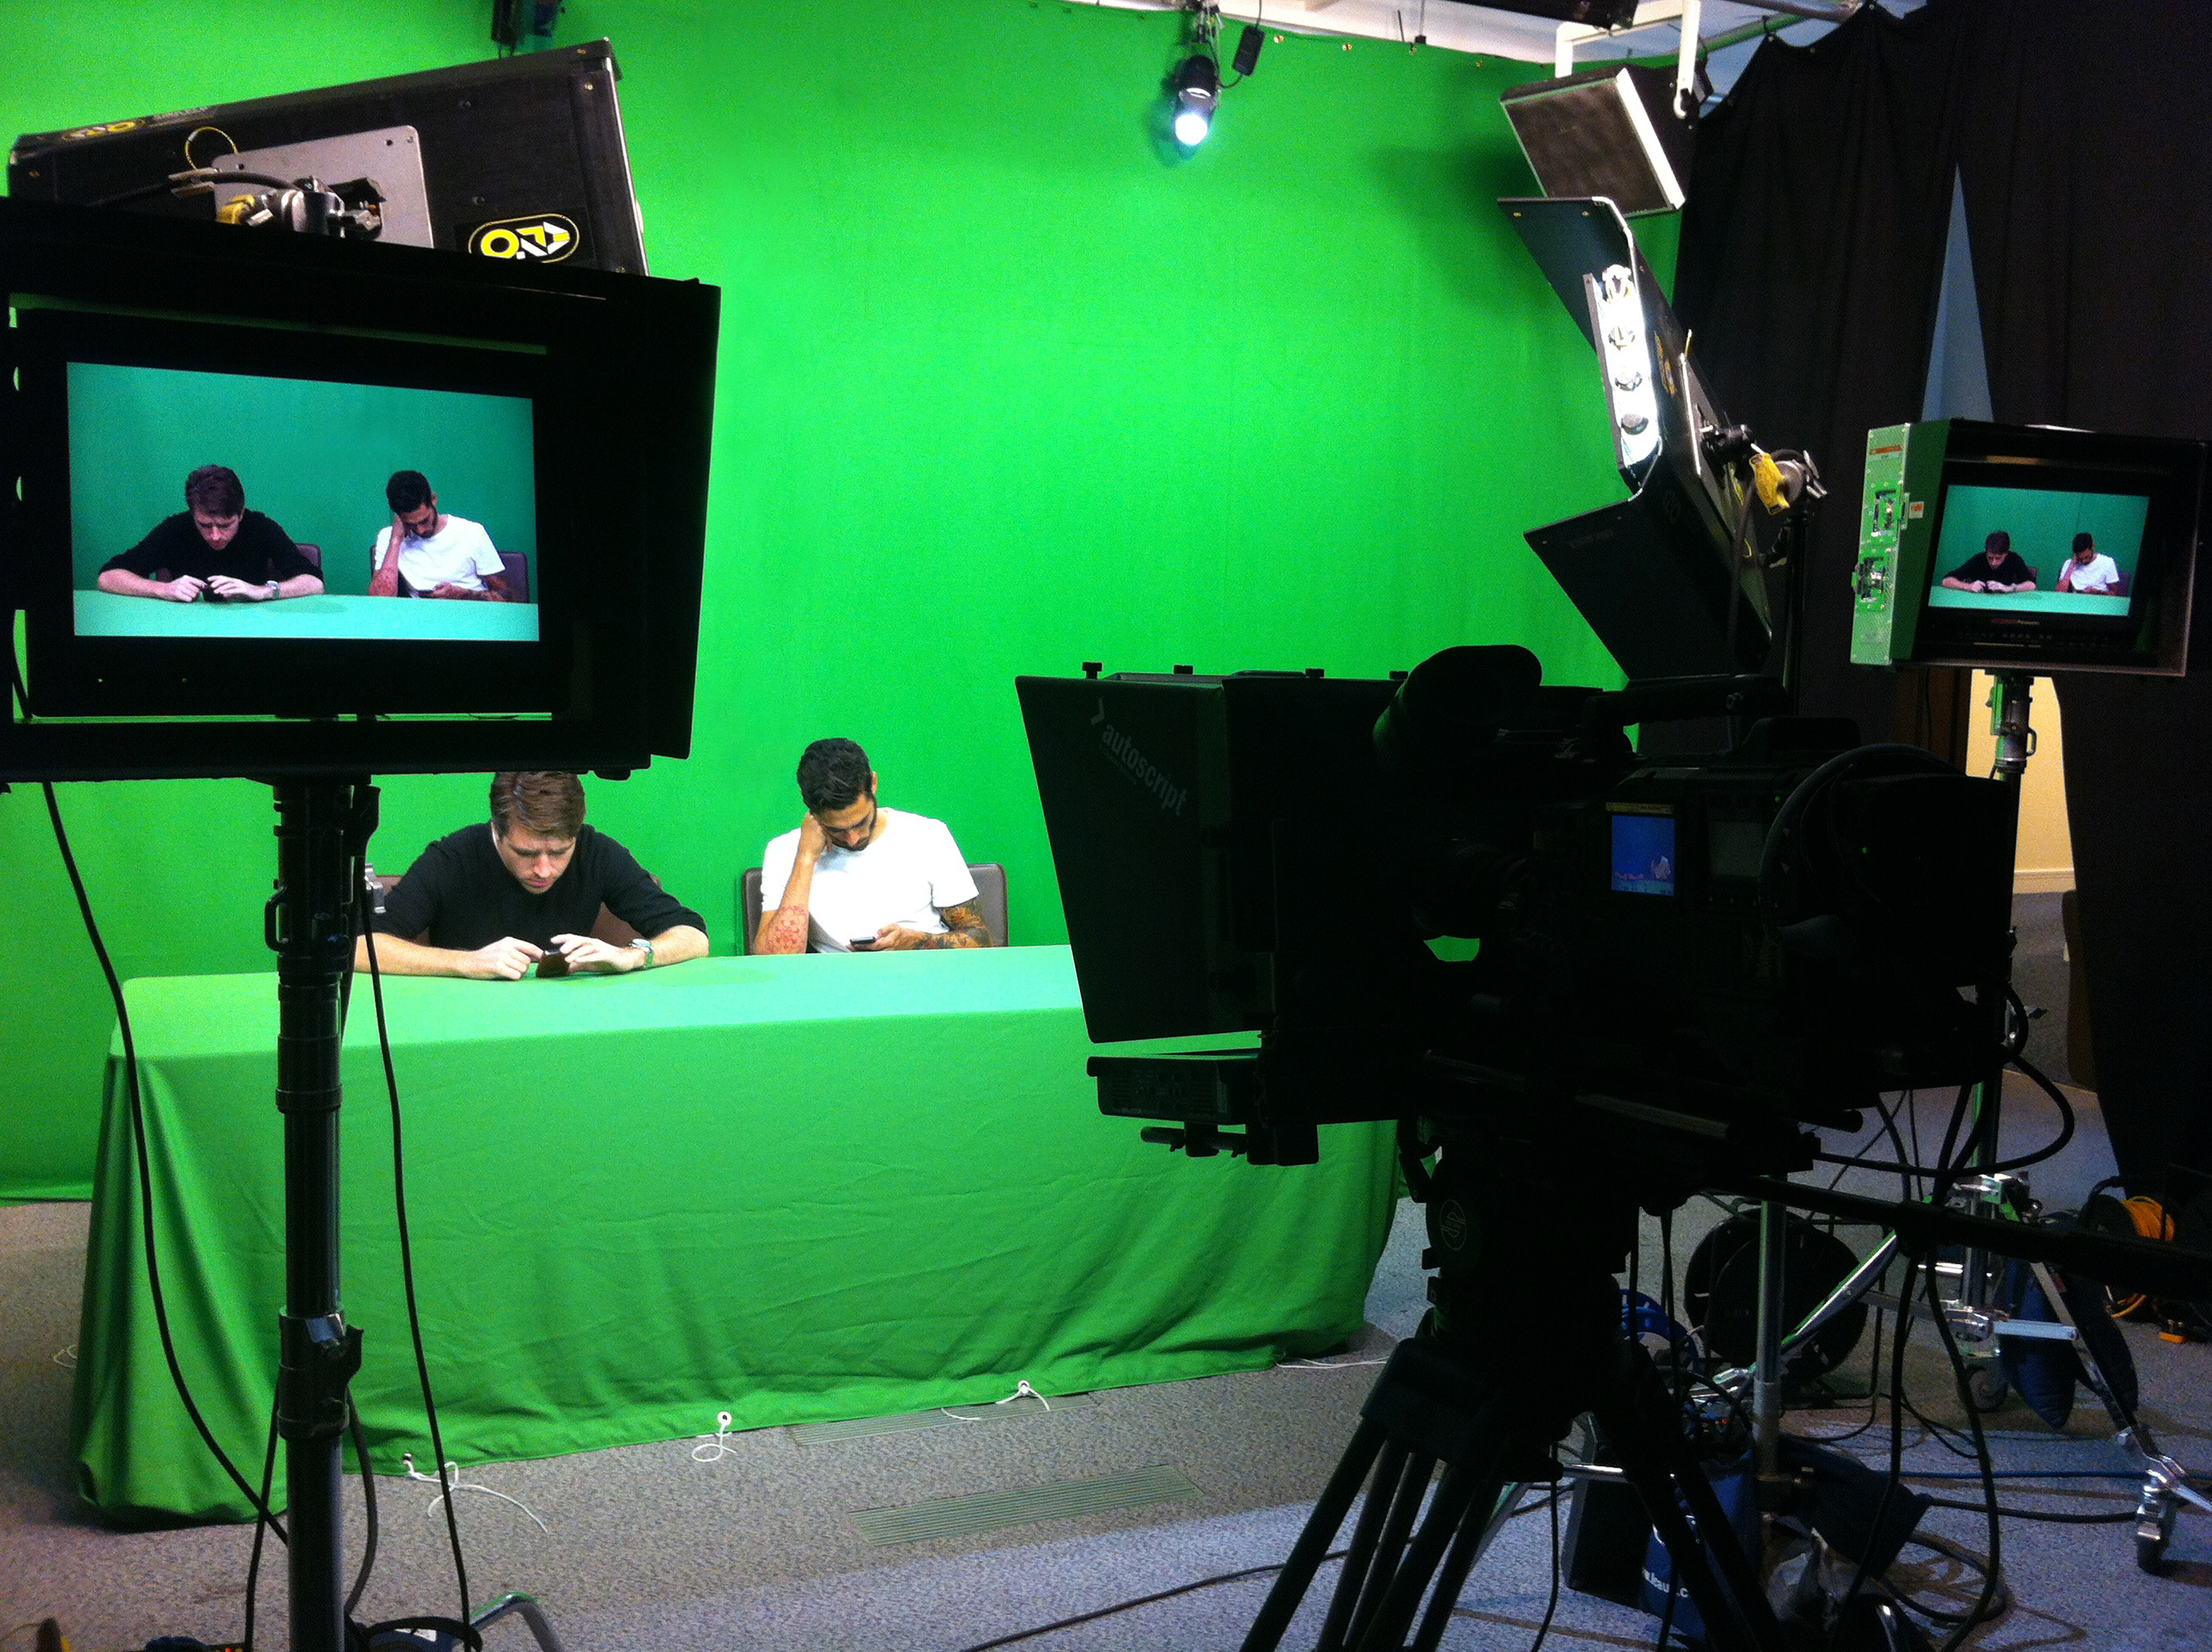 Green Screen Studio 2 at IQ Studios with Green Desk, camera, monitors and lights.